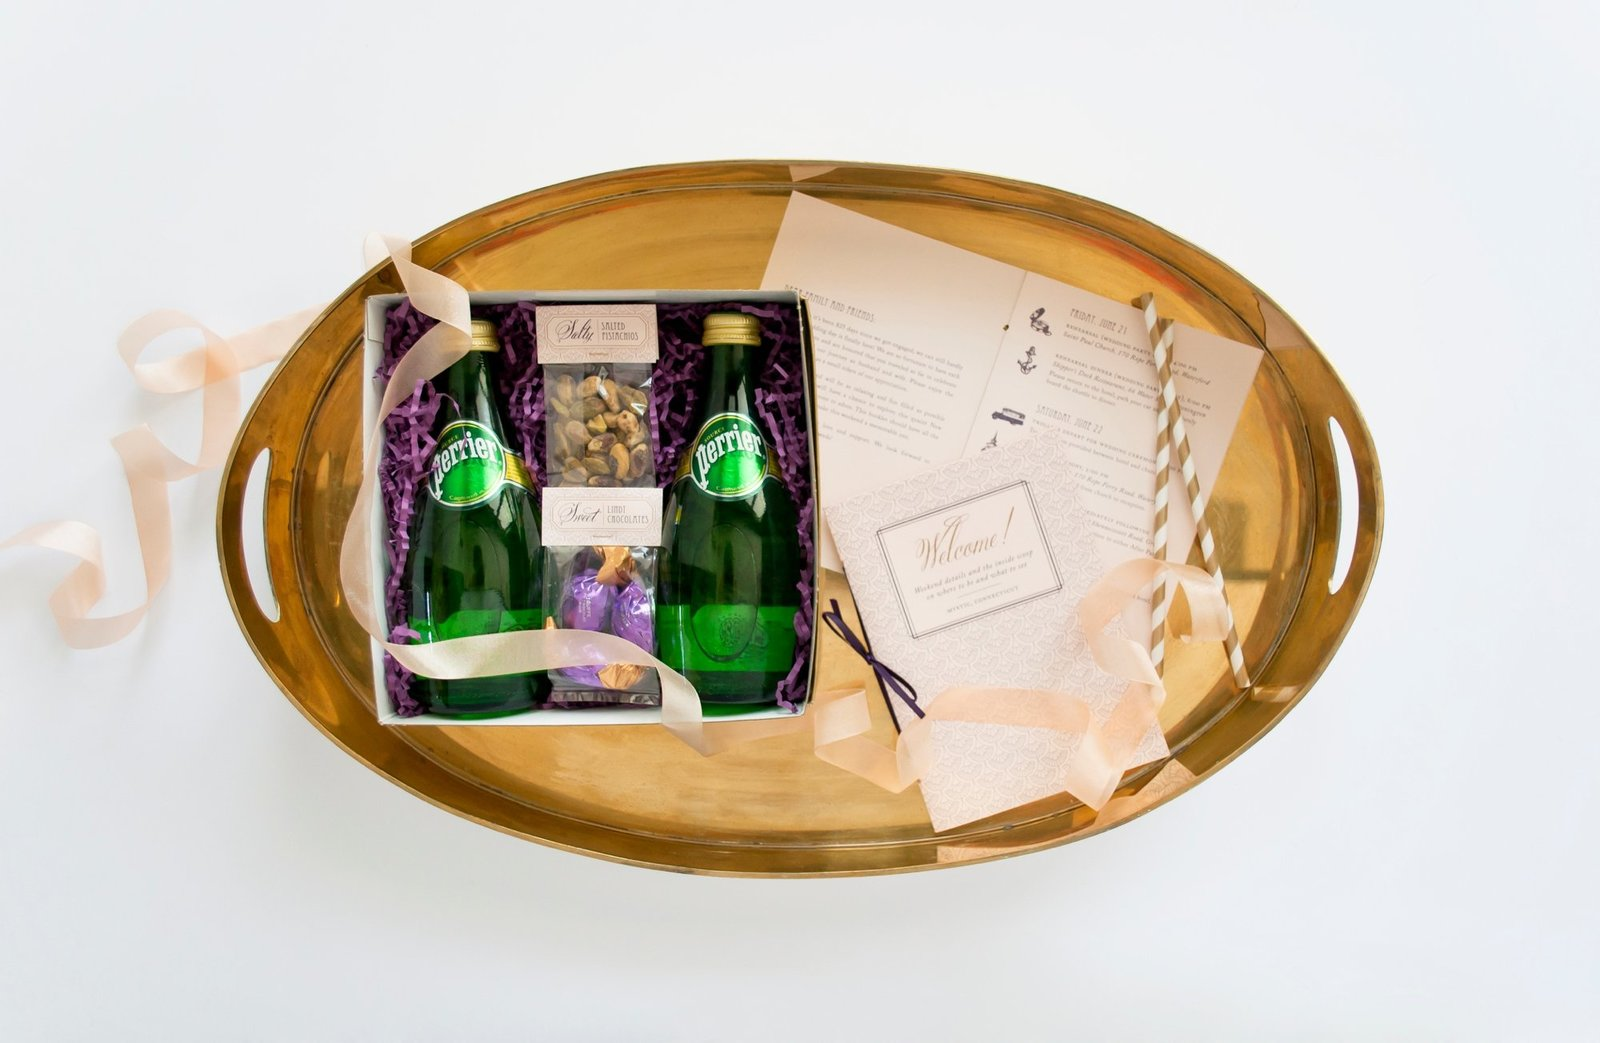 Luxurious gatsby themed welcome gifts for guests at The Branford House in Groton, CT